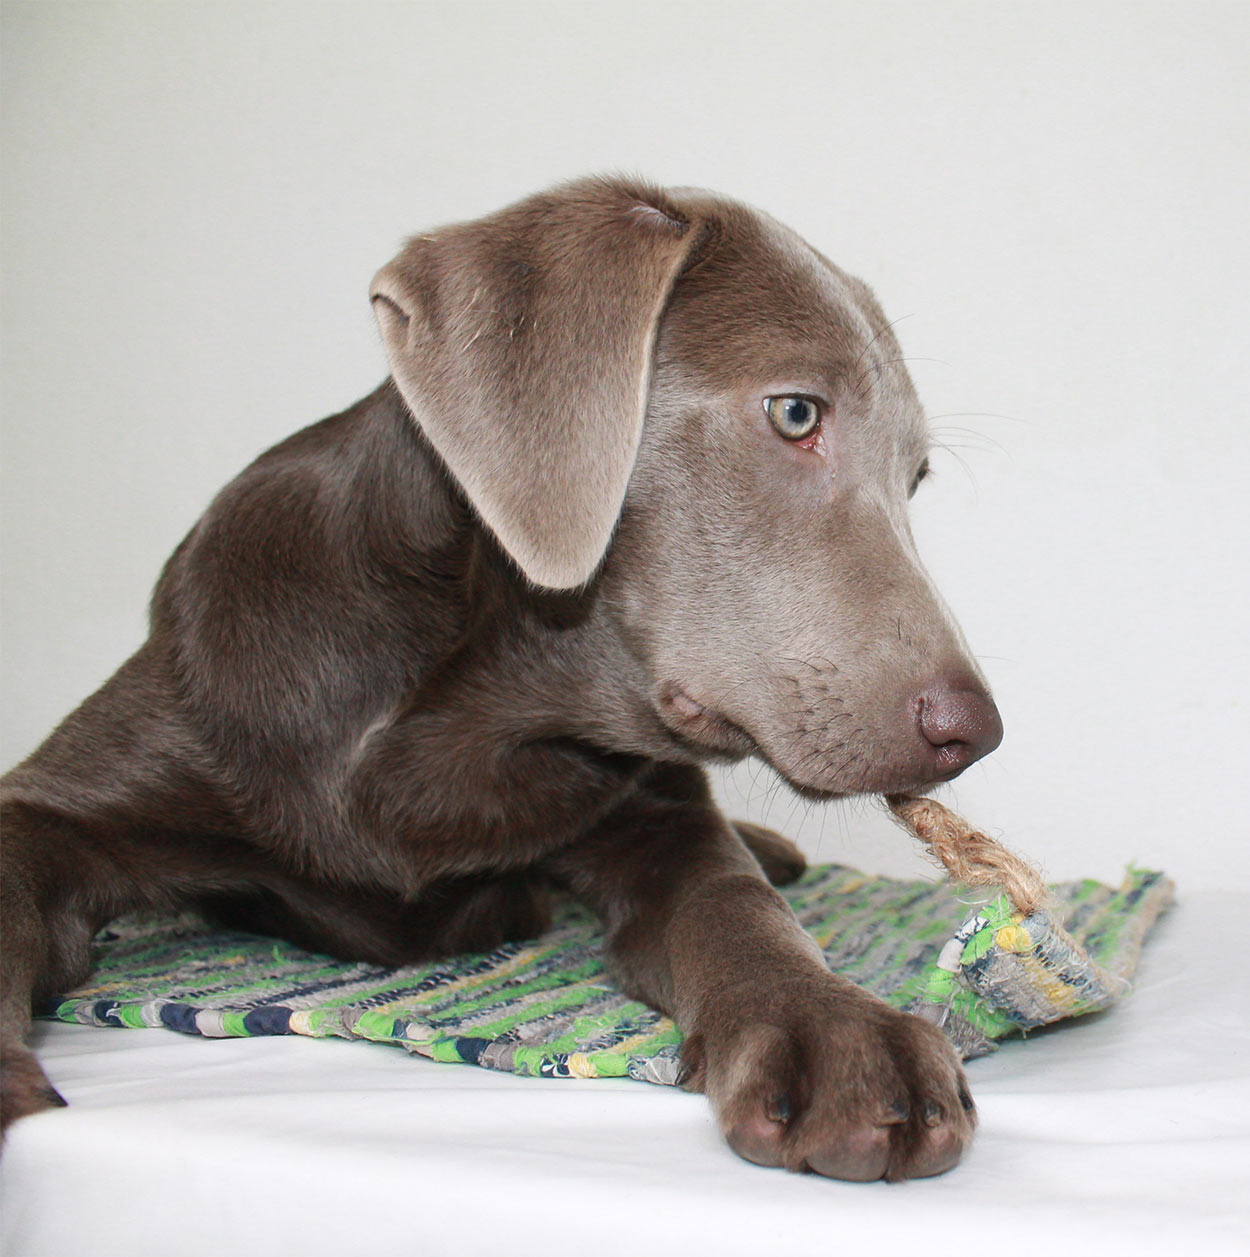 Weimaraner Lab Mix - Is This Cross Breed The Right Pup For Your Family